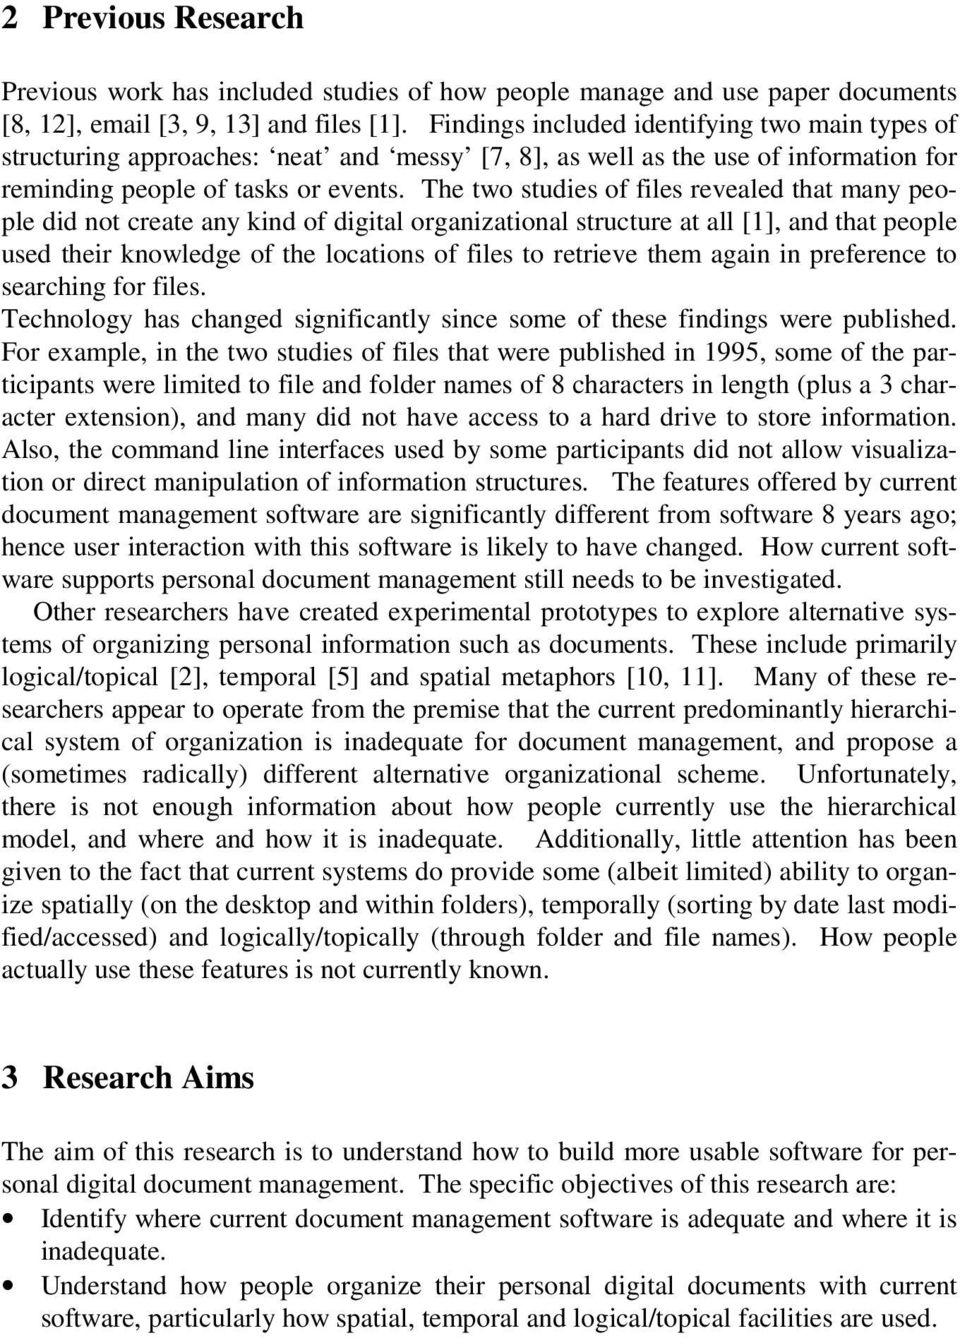 The two studies of files revealed that many people did not create any kind of digital organizational structure at all [1], and that people used their knowledge of the locations of files to retrieve